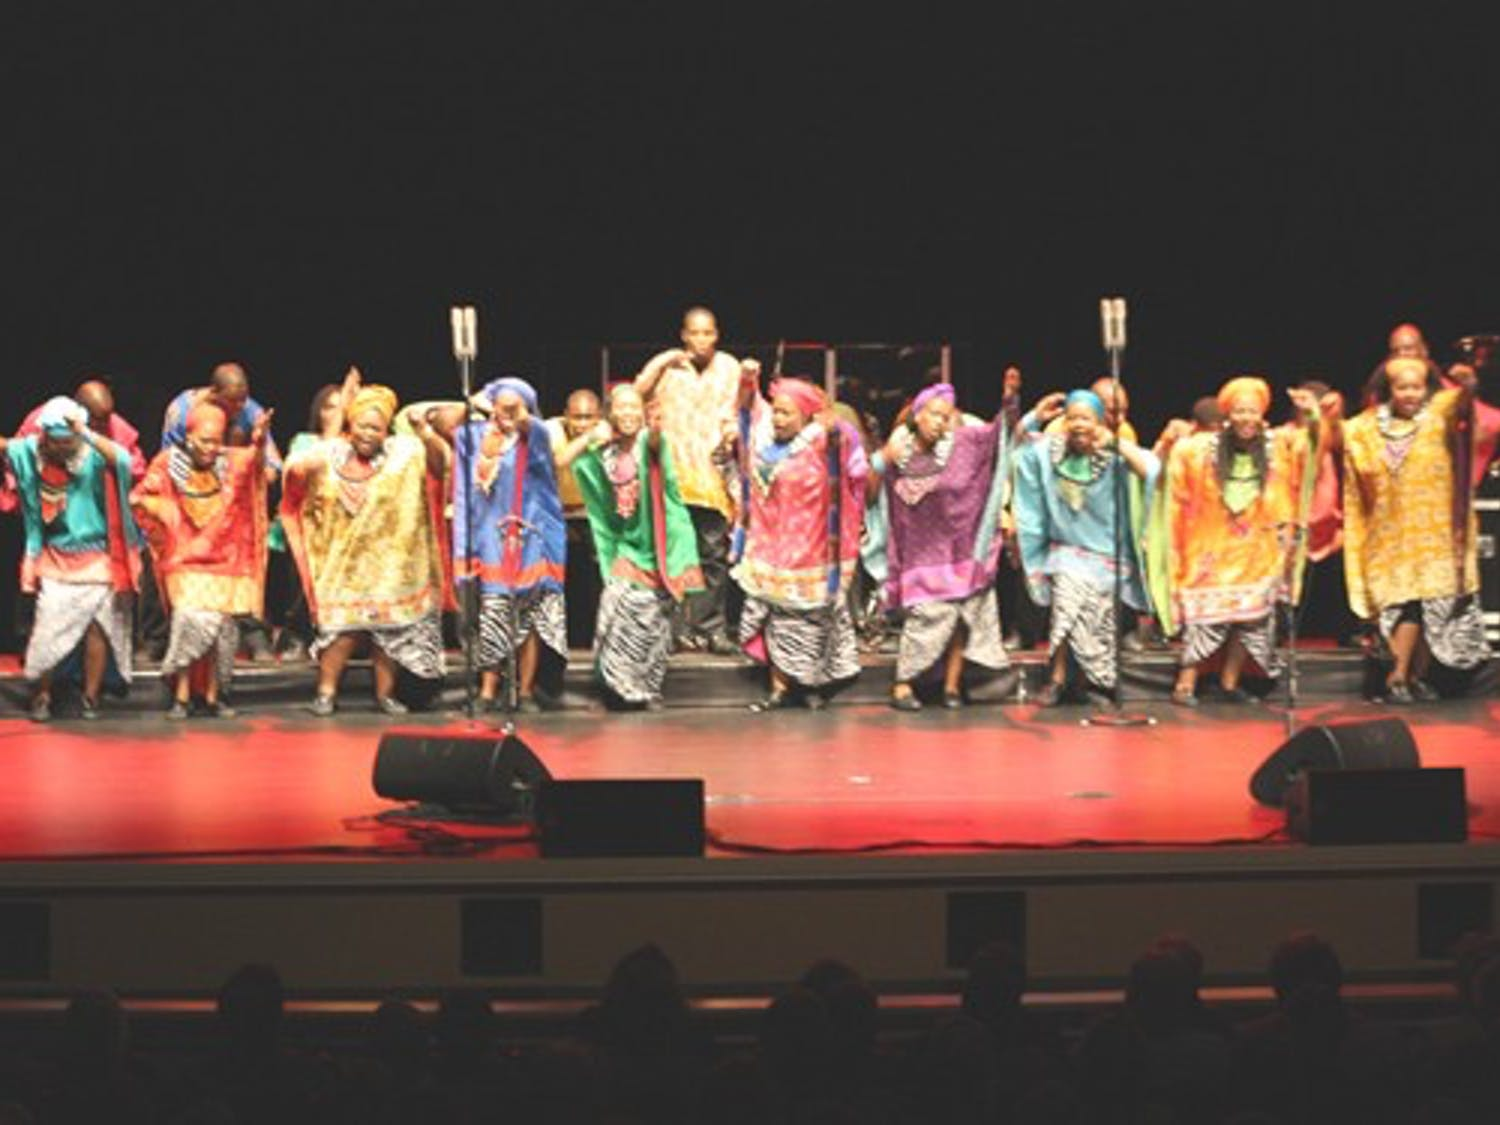 The Soweto Gospel Choir energetically performed song and dance at Memorial Hall on Sunday.  DTH/Gladys Manzur